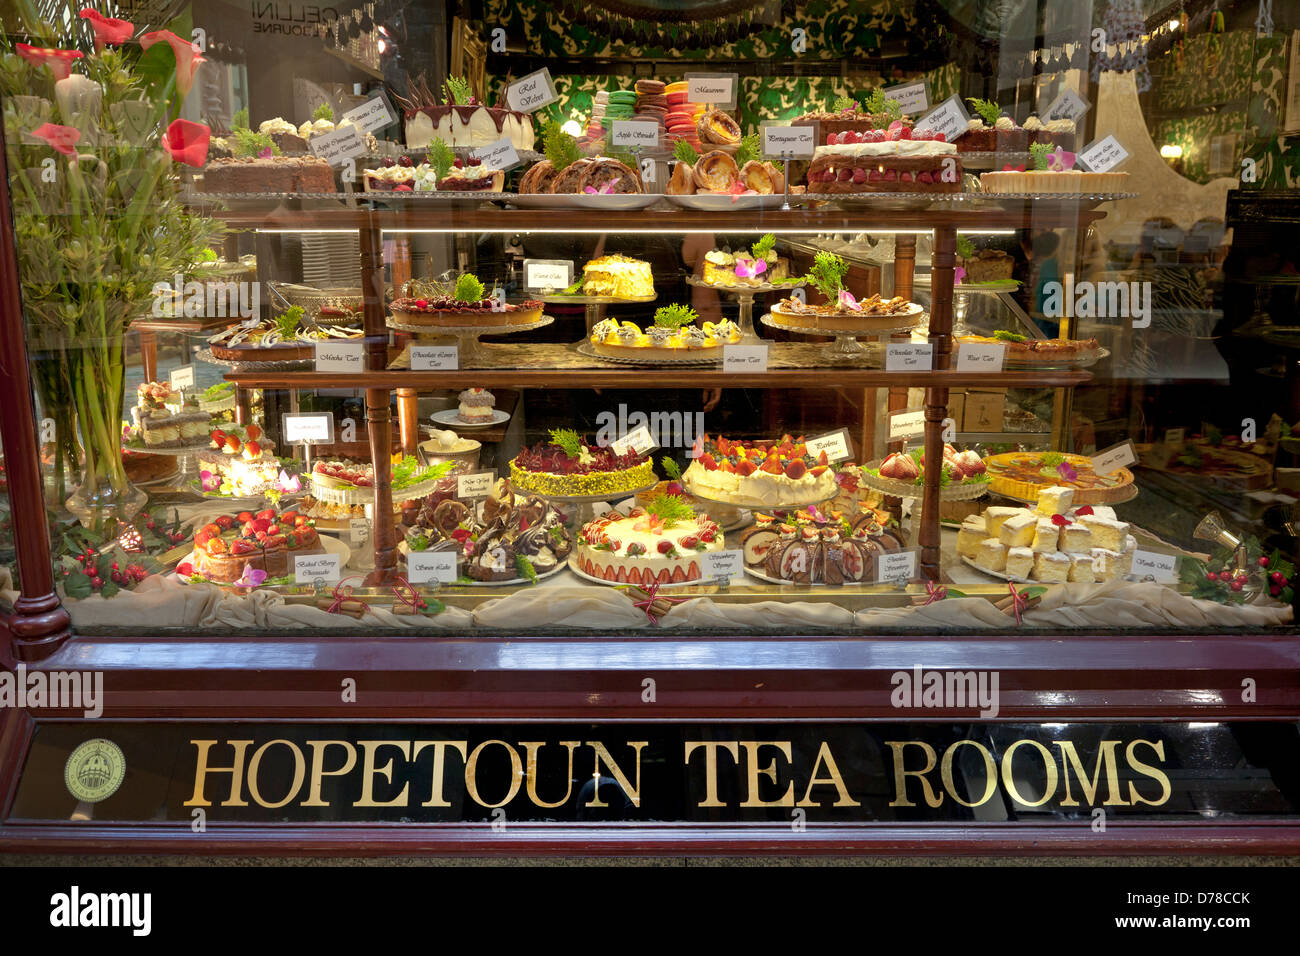 Hopetoun Tea Room Cakes